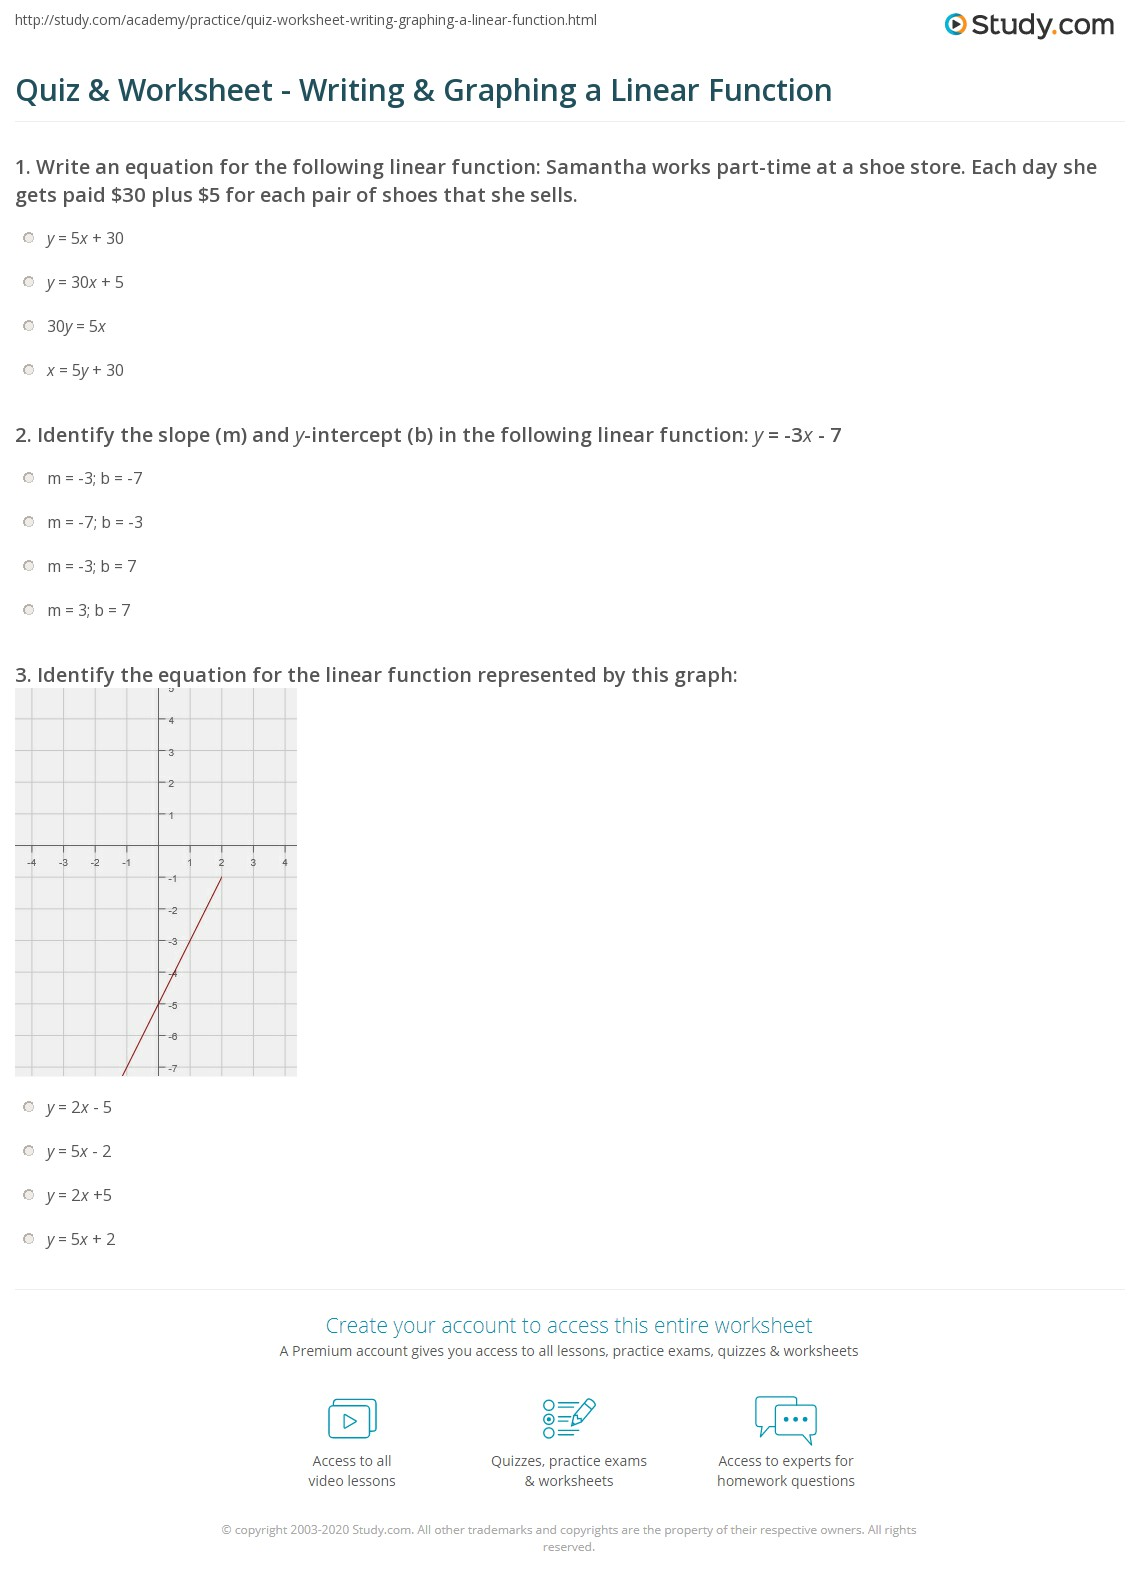 print writing graphing linear functions worksheet - Graphing Linear Functions Worksheet